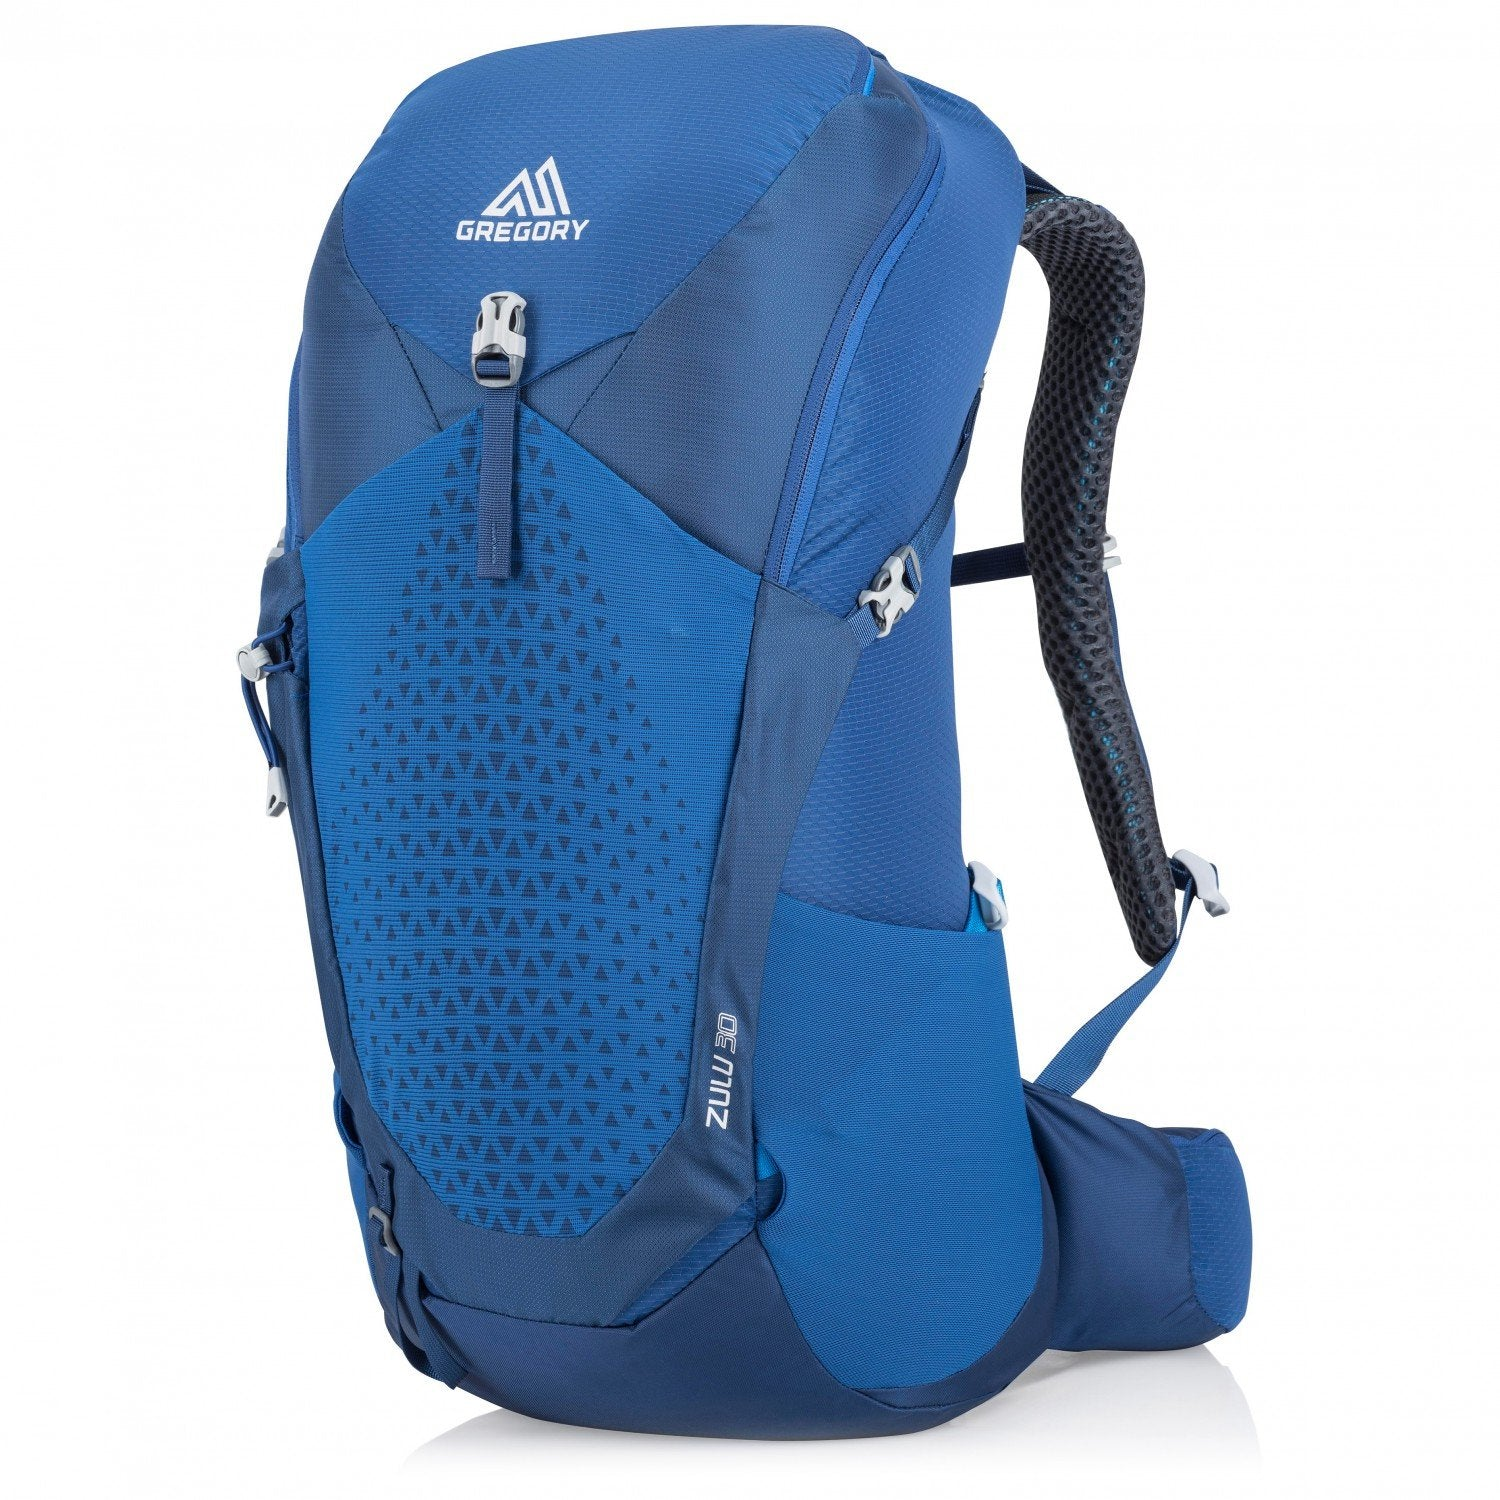 Gregory Zulu 30 rucksack, front/side view in Blue colour